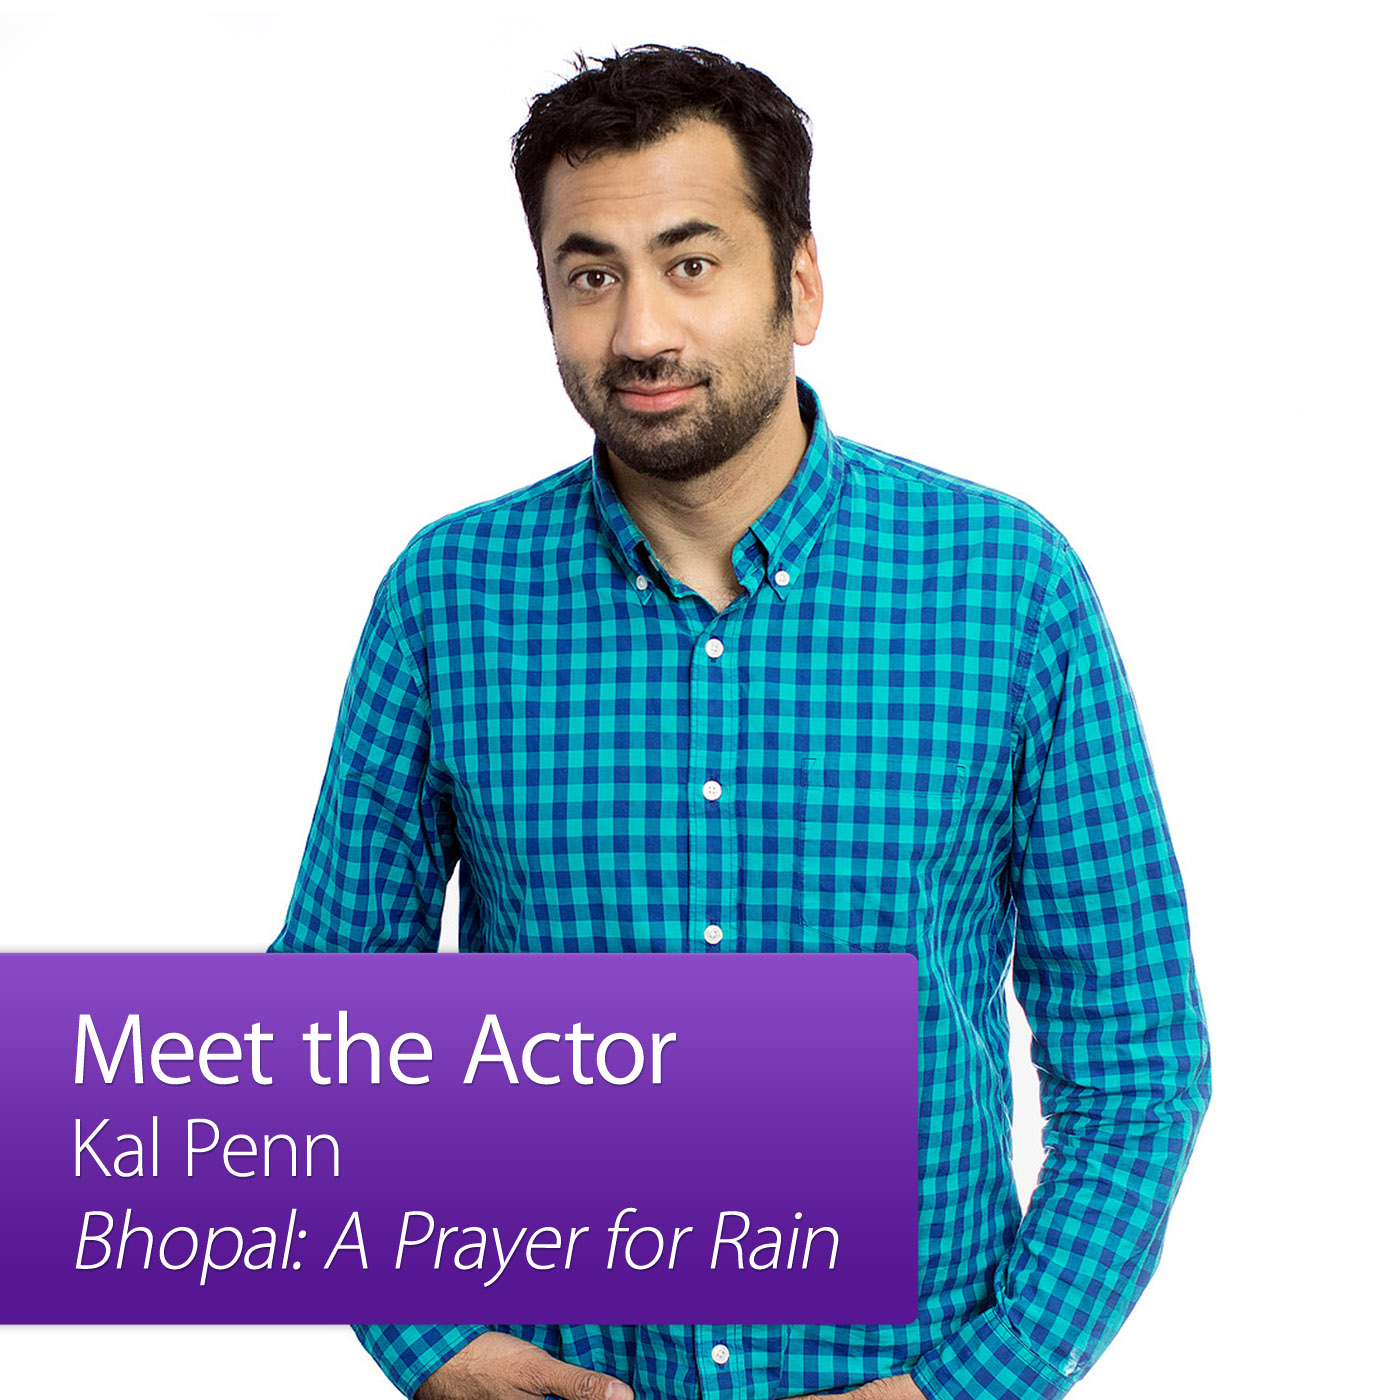 Kal Penn: Meet the Actor